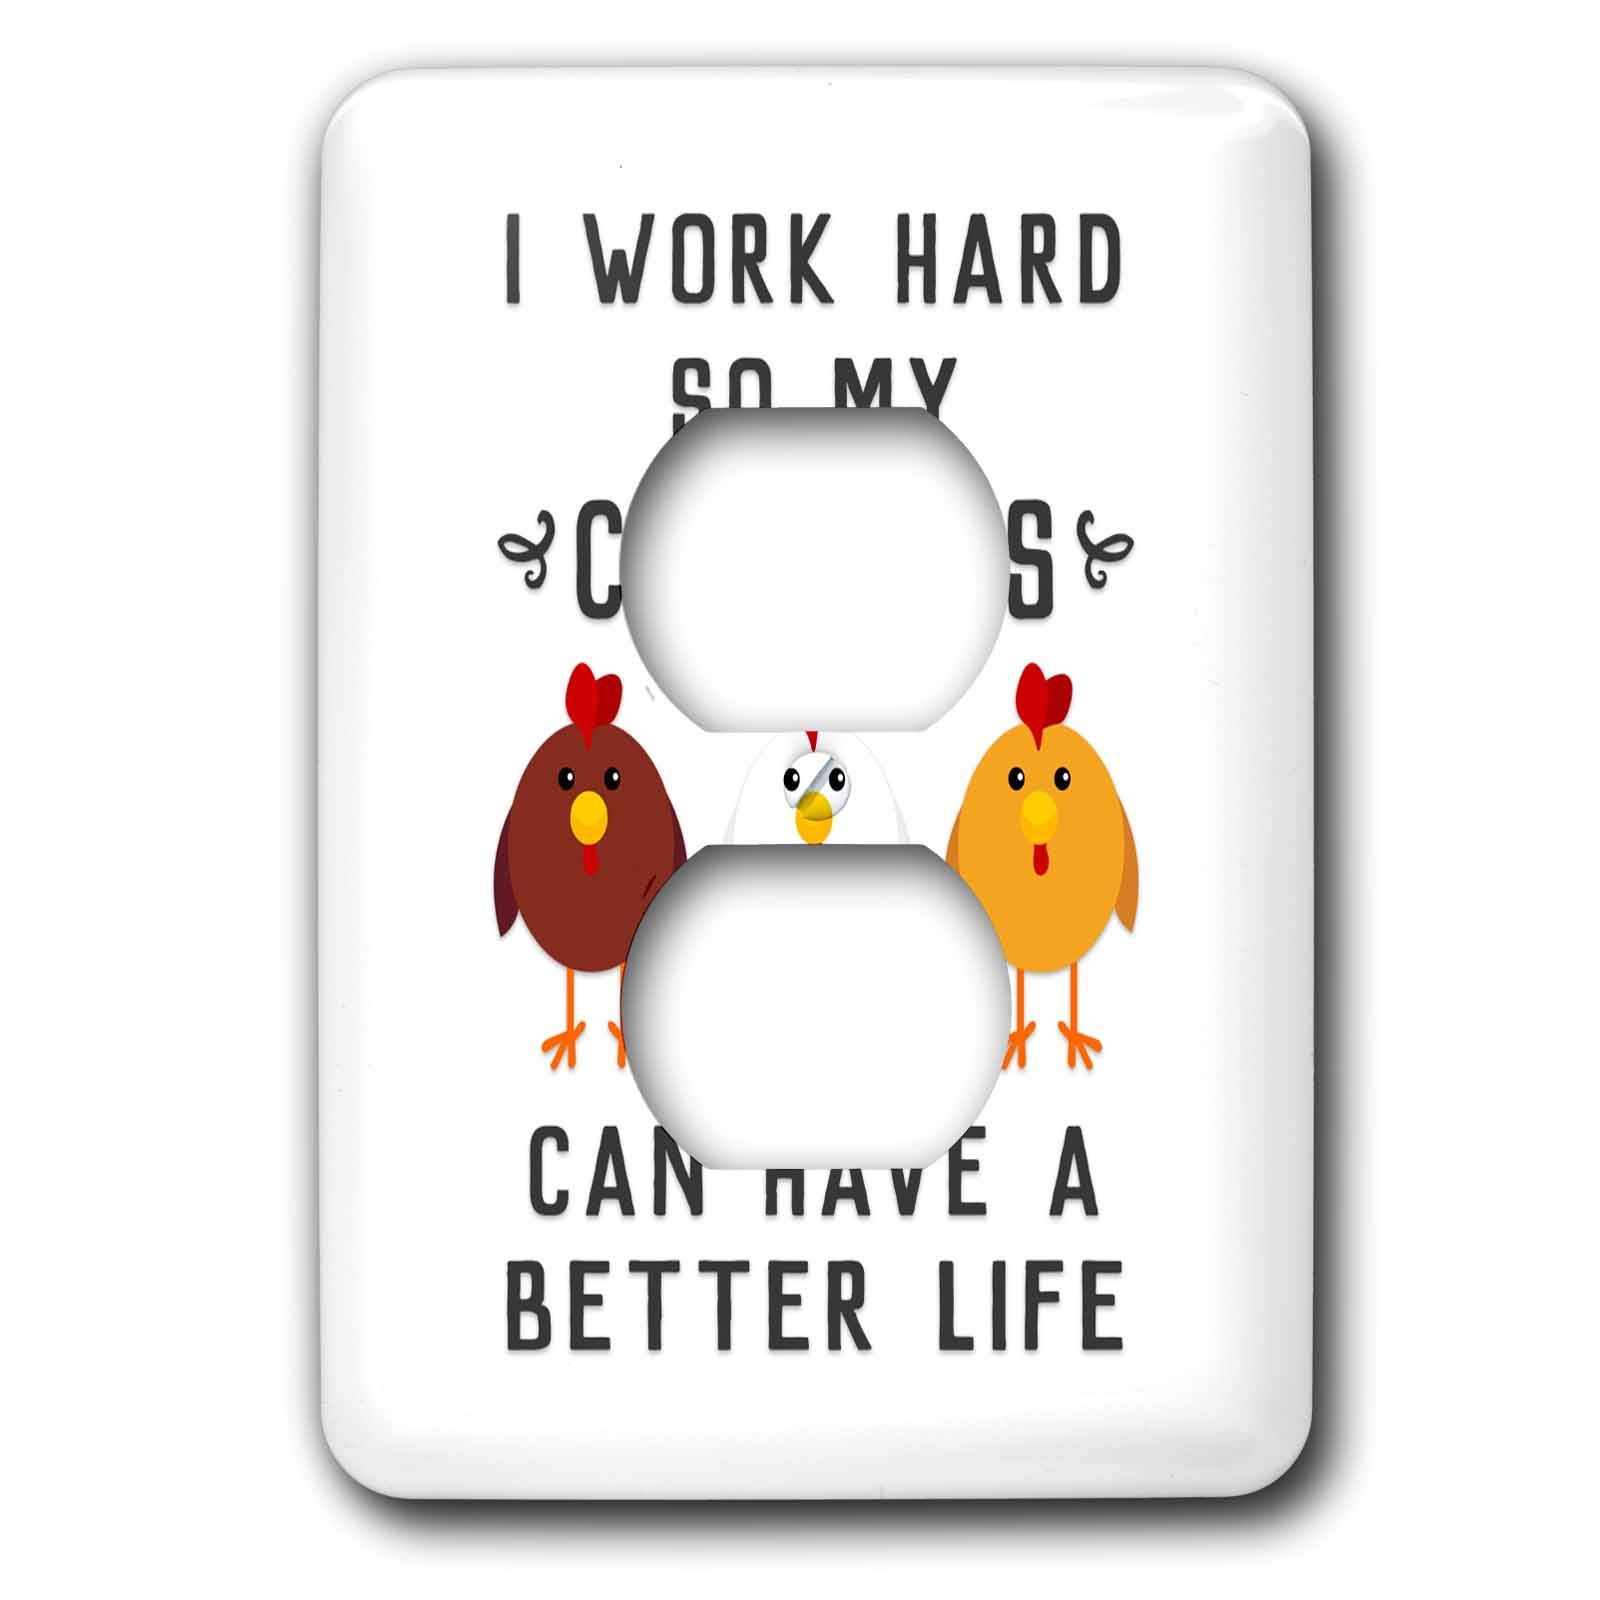 3dRose Janna Salak Designs Text Art - I Work Hard So My Chickens Can Have A Better Life - Light Switch Covers - 2 plug outlet cover (lsp_289656_6)